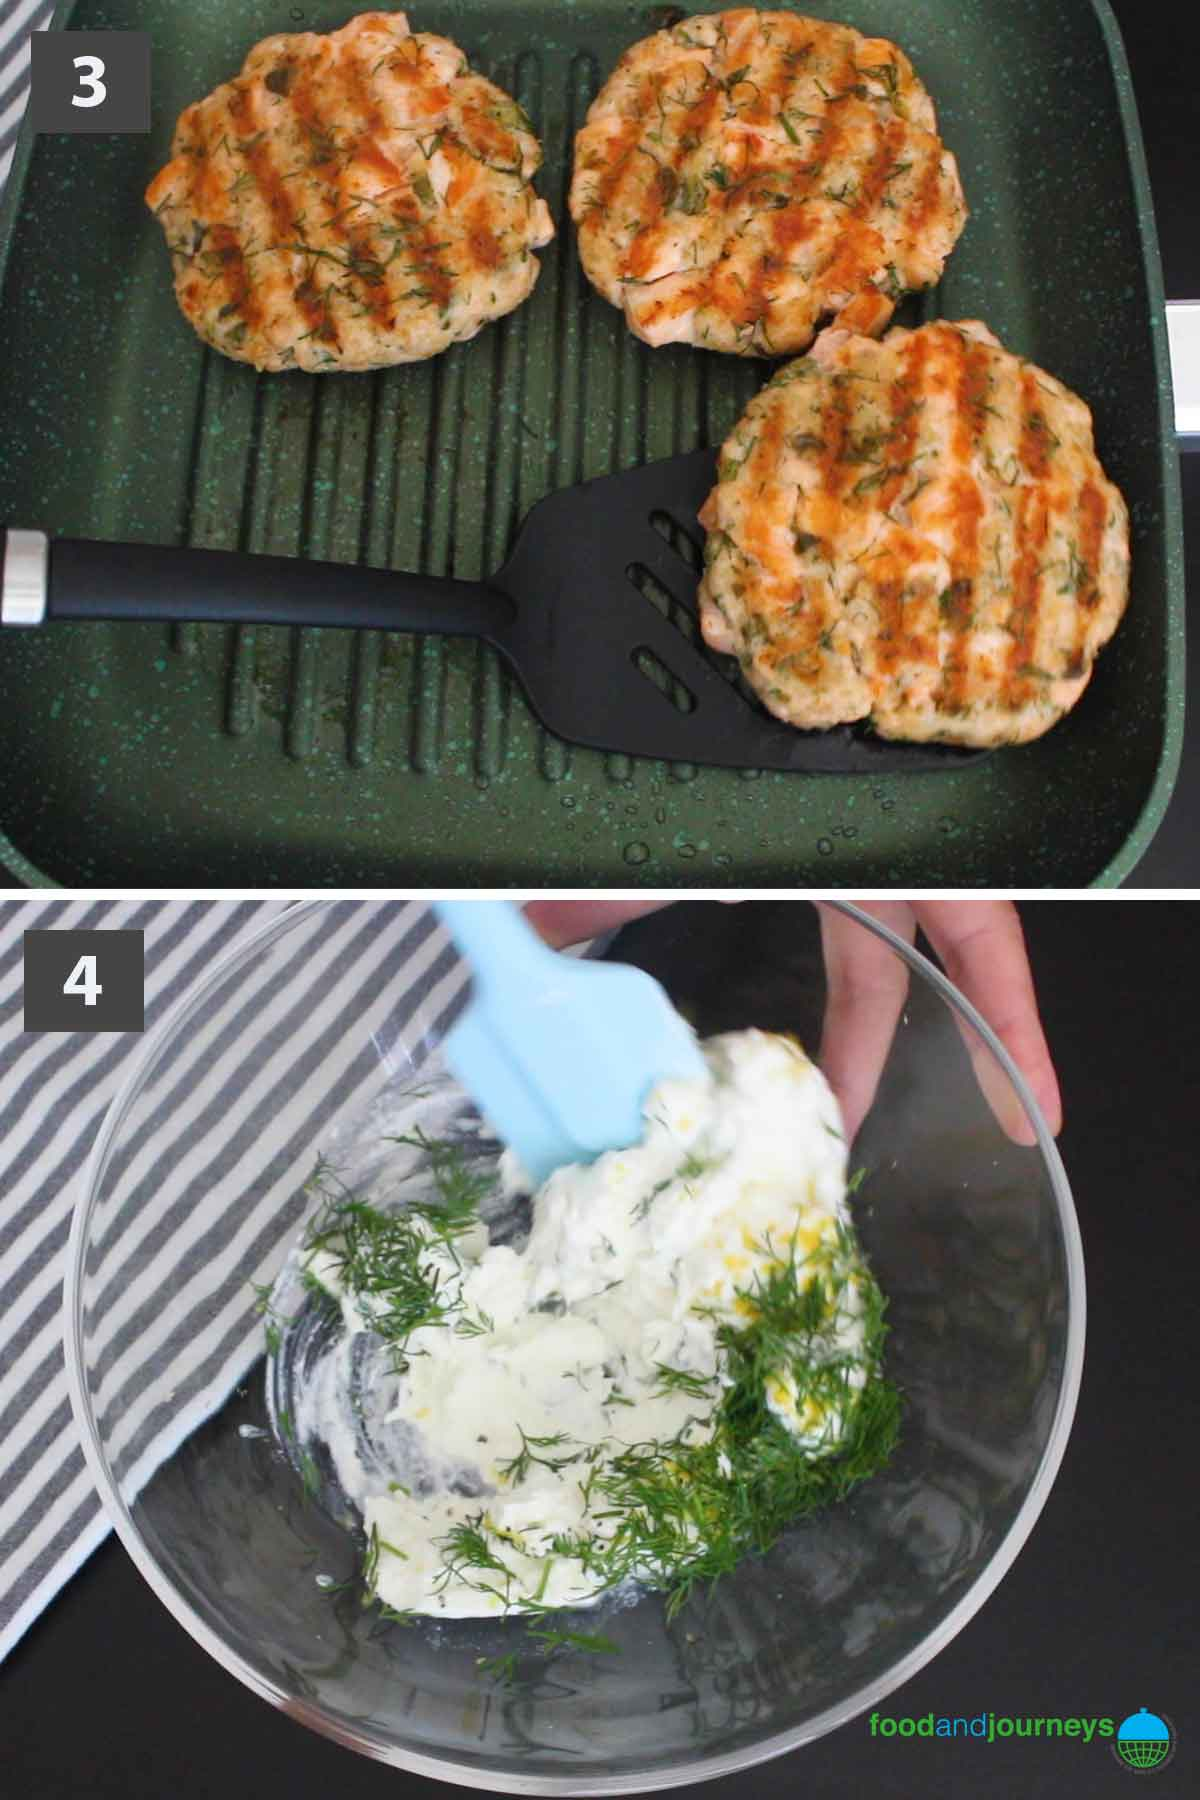 Second part of the second version of a collage of images showing the step by step process on how to prepare Salmon Burgers at home.